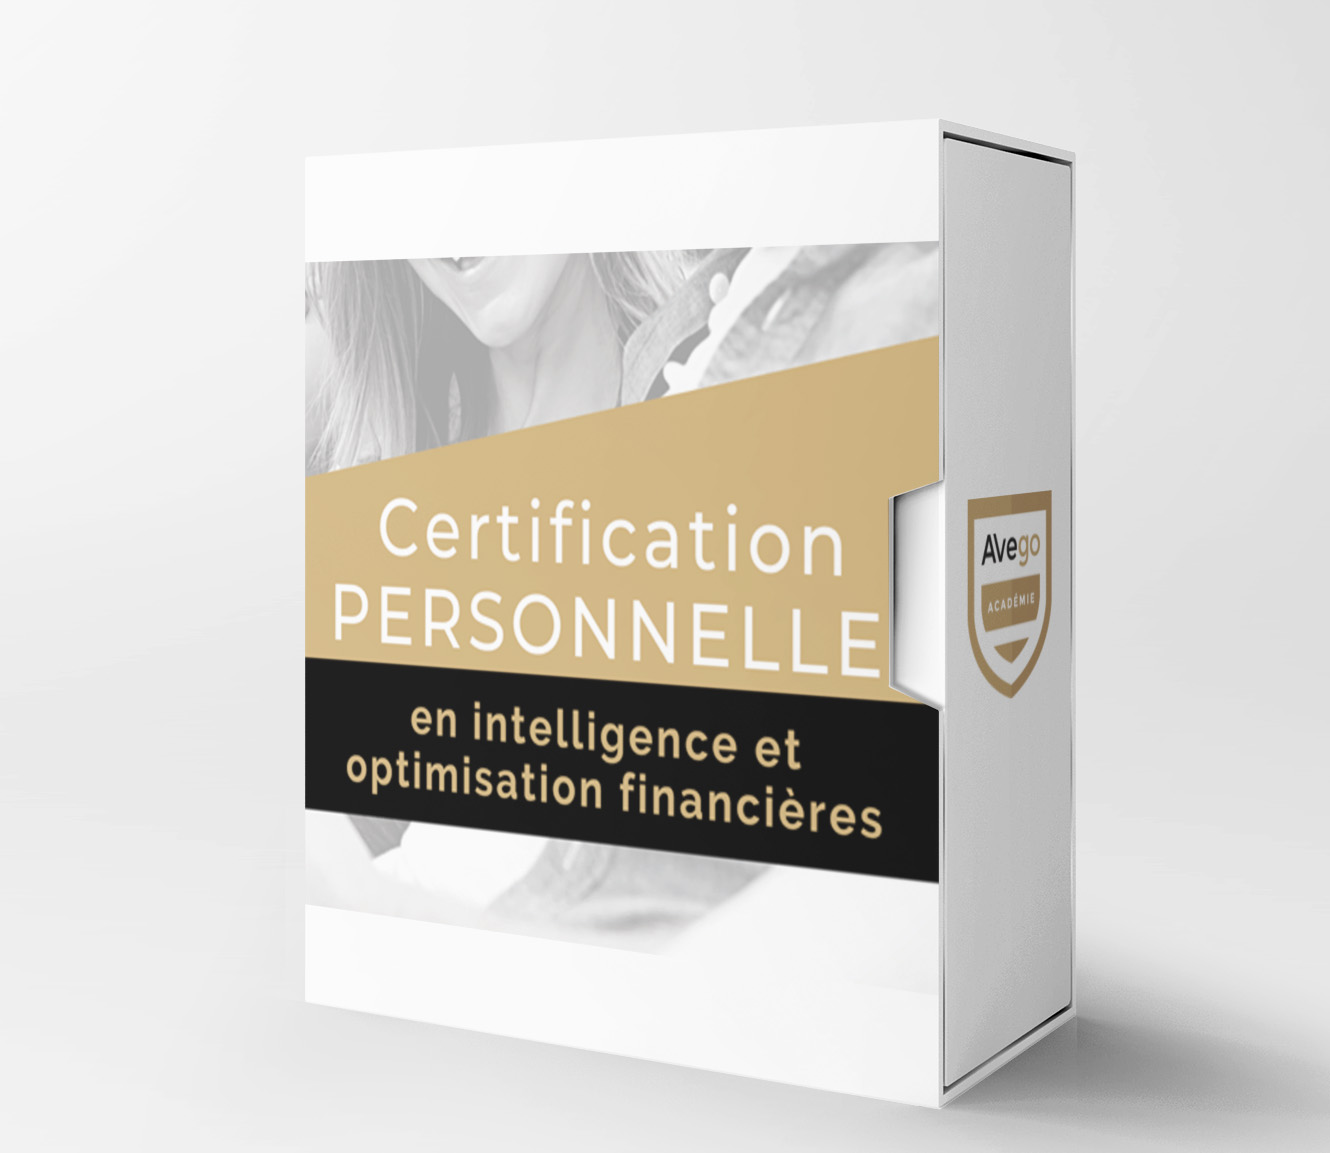 Certfification Personelle optimisation financieres